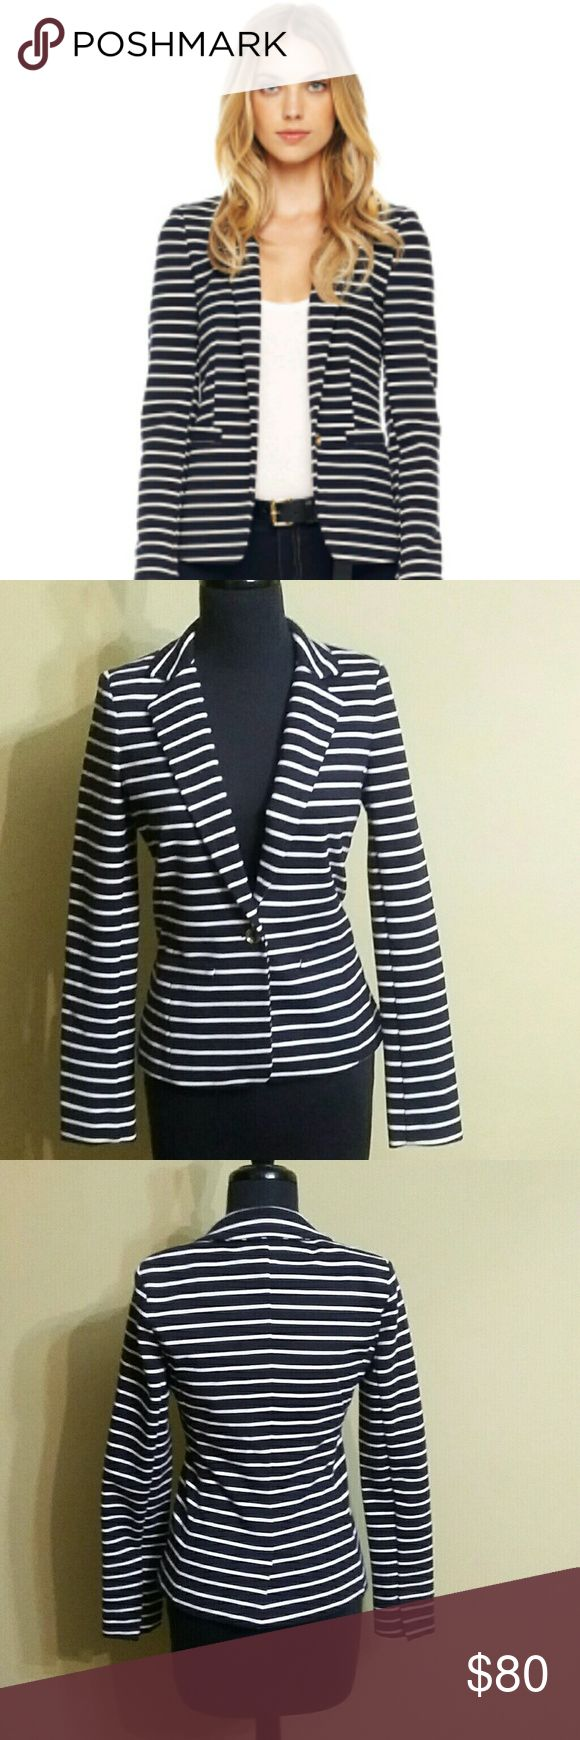 Michael Kors Blazer NWOT Michael Kors navy blue and white striped Blazer. It has  one gold button on it which is nice accent.  It is new without the tags. Michael Kors Jackets & Coats Blazers